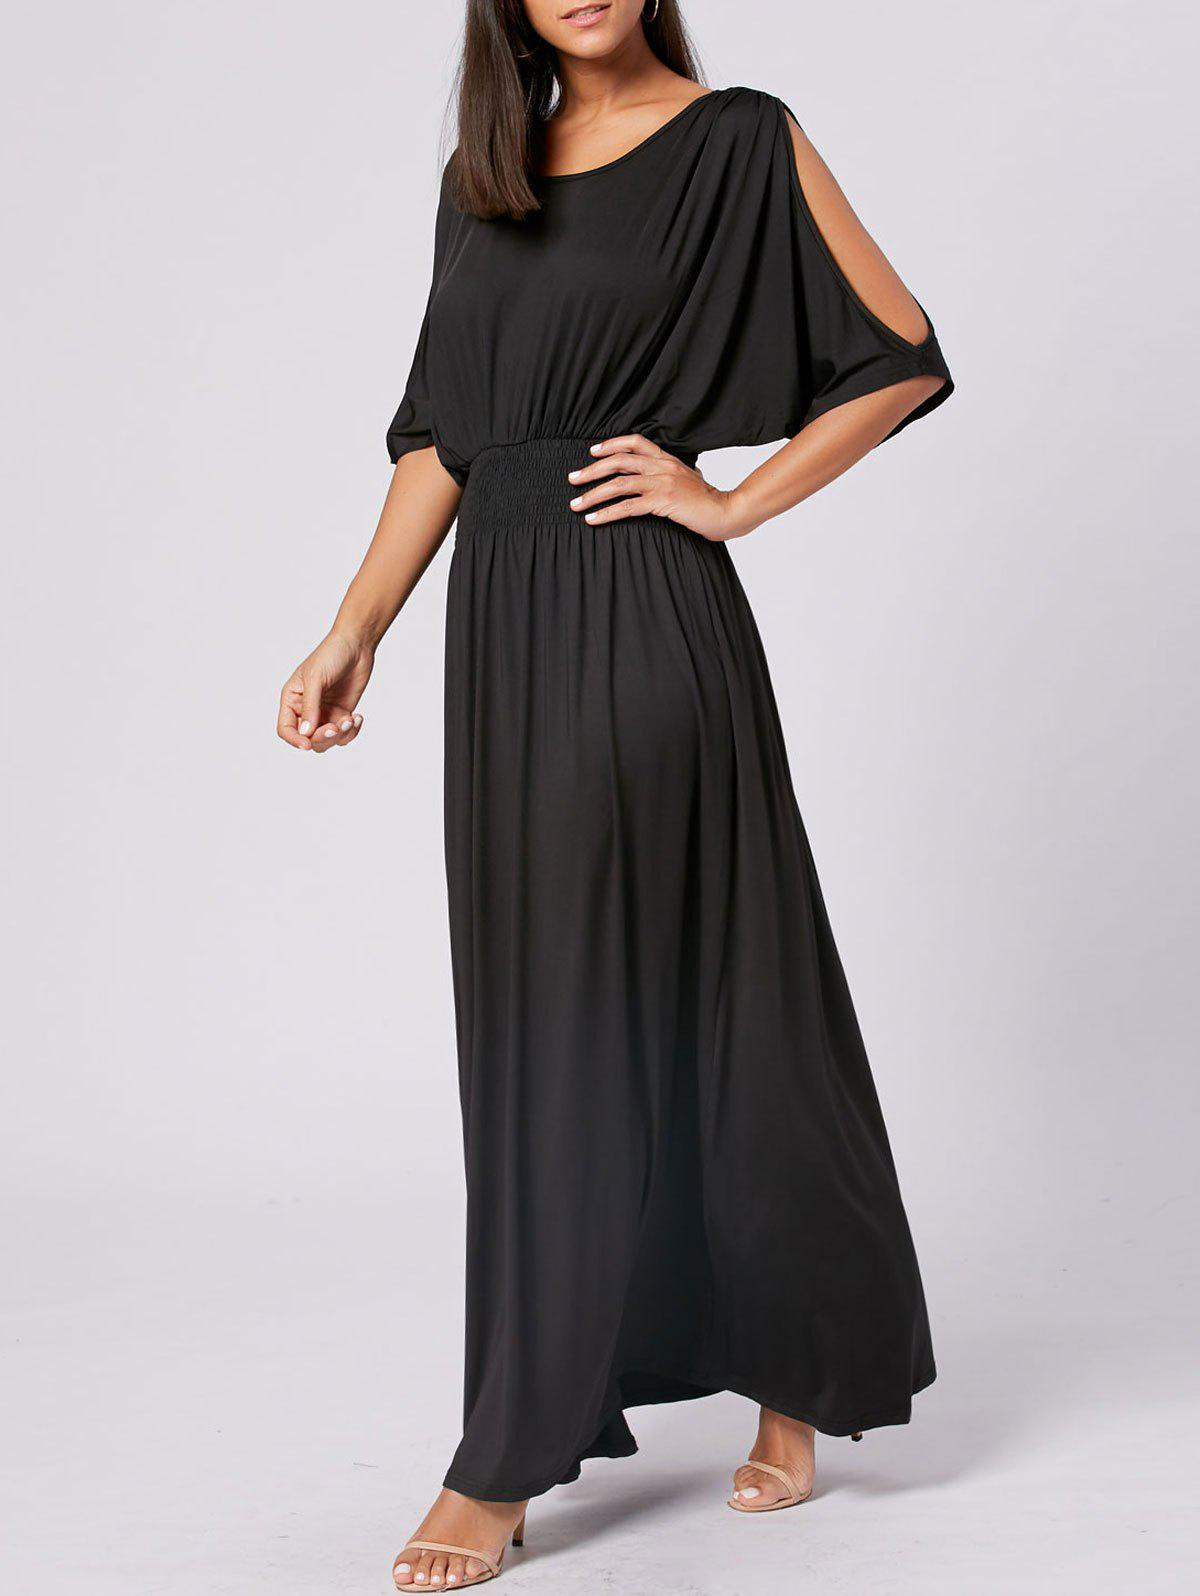 High Waist Slit Sleeve Maxi Party DressWOMEN<br><br>Size: 2XL; Color: BLACK; Style: Brief; Material: Cotton,Polyester; Silhouette: A-Line; Dresses Length: Floor-Length; Neckline: Scoop Neck; Sleeve Length: 3/4 Length Sleeves; Pattern Type: Solid Color; With Belt: No; Season: Fall,Spring; Weight: 0.5300kg; Package Contents: 1 x Dress;